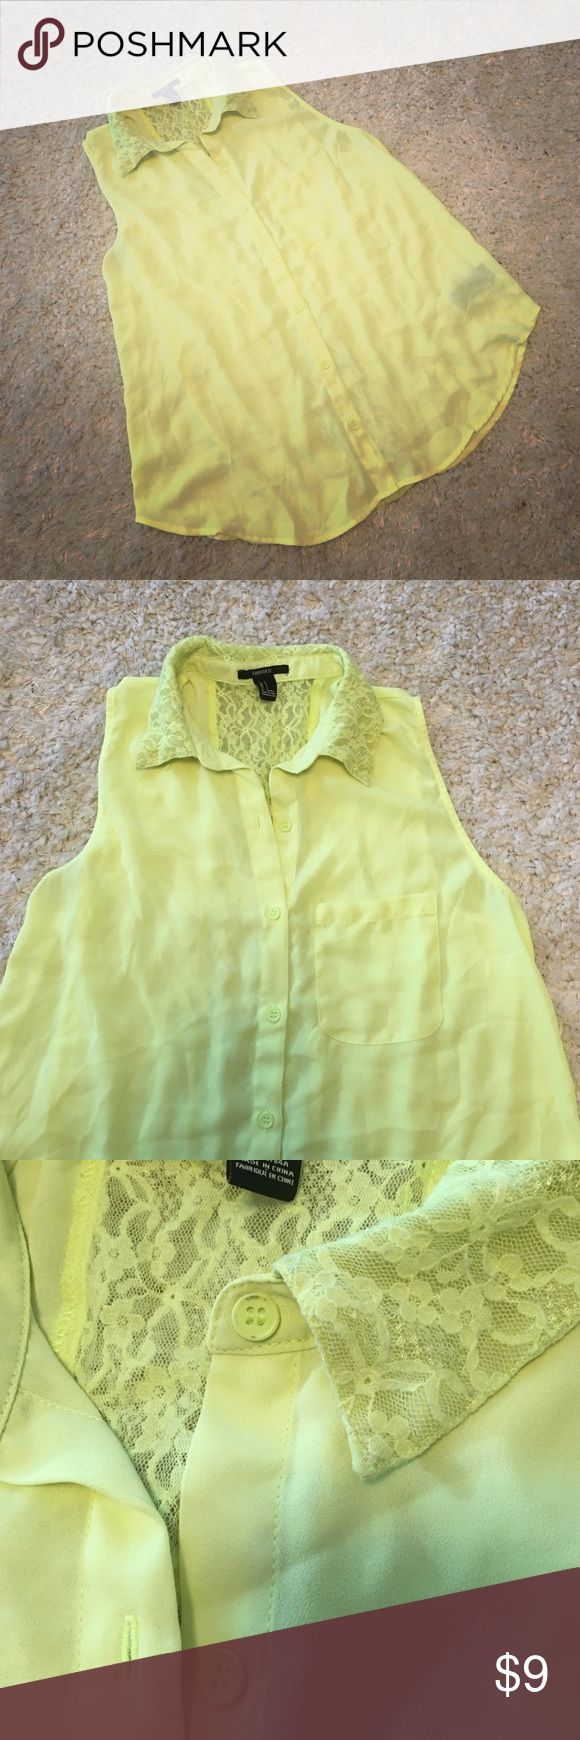 Forever 21 neon yellow top with lace detail. SizeS Forever 21 top. Size small. Neon yellow. Lace collar and back panel detail. Button front closure. The top button has a mark as seen in picture 3 but when you wear it you don't notice. Please let me know if you have any questions. Thanks! Forever 21 Tops Blouses